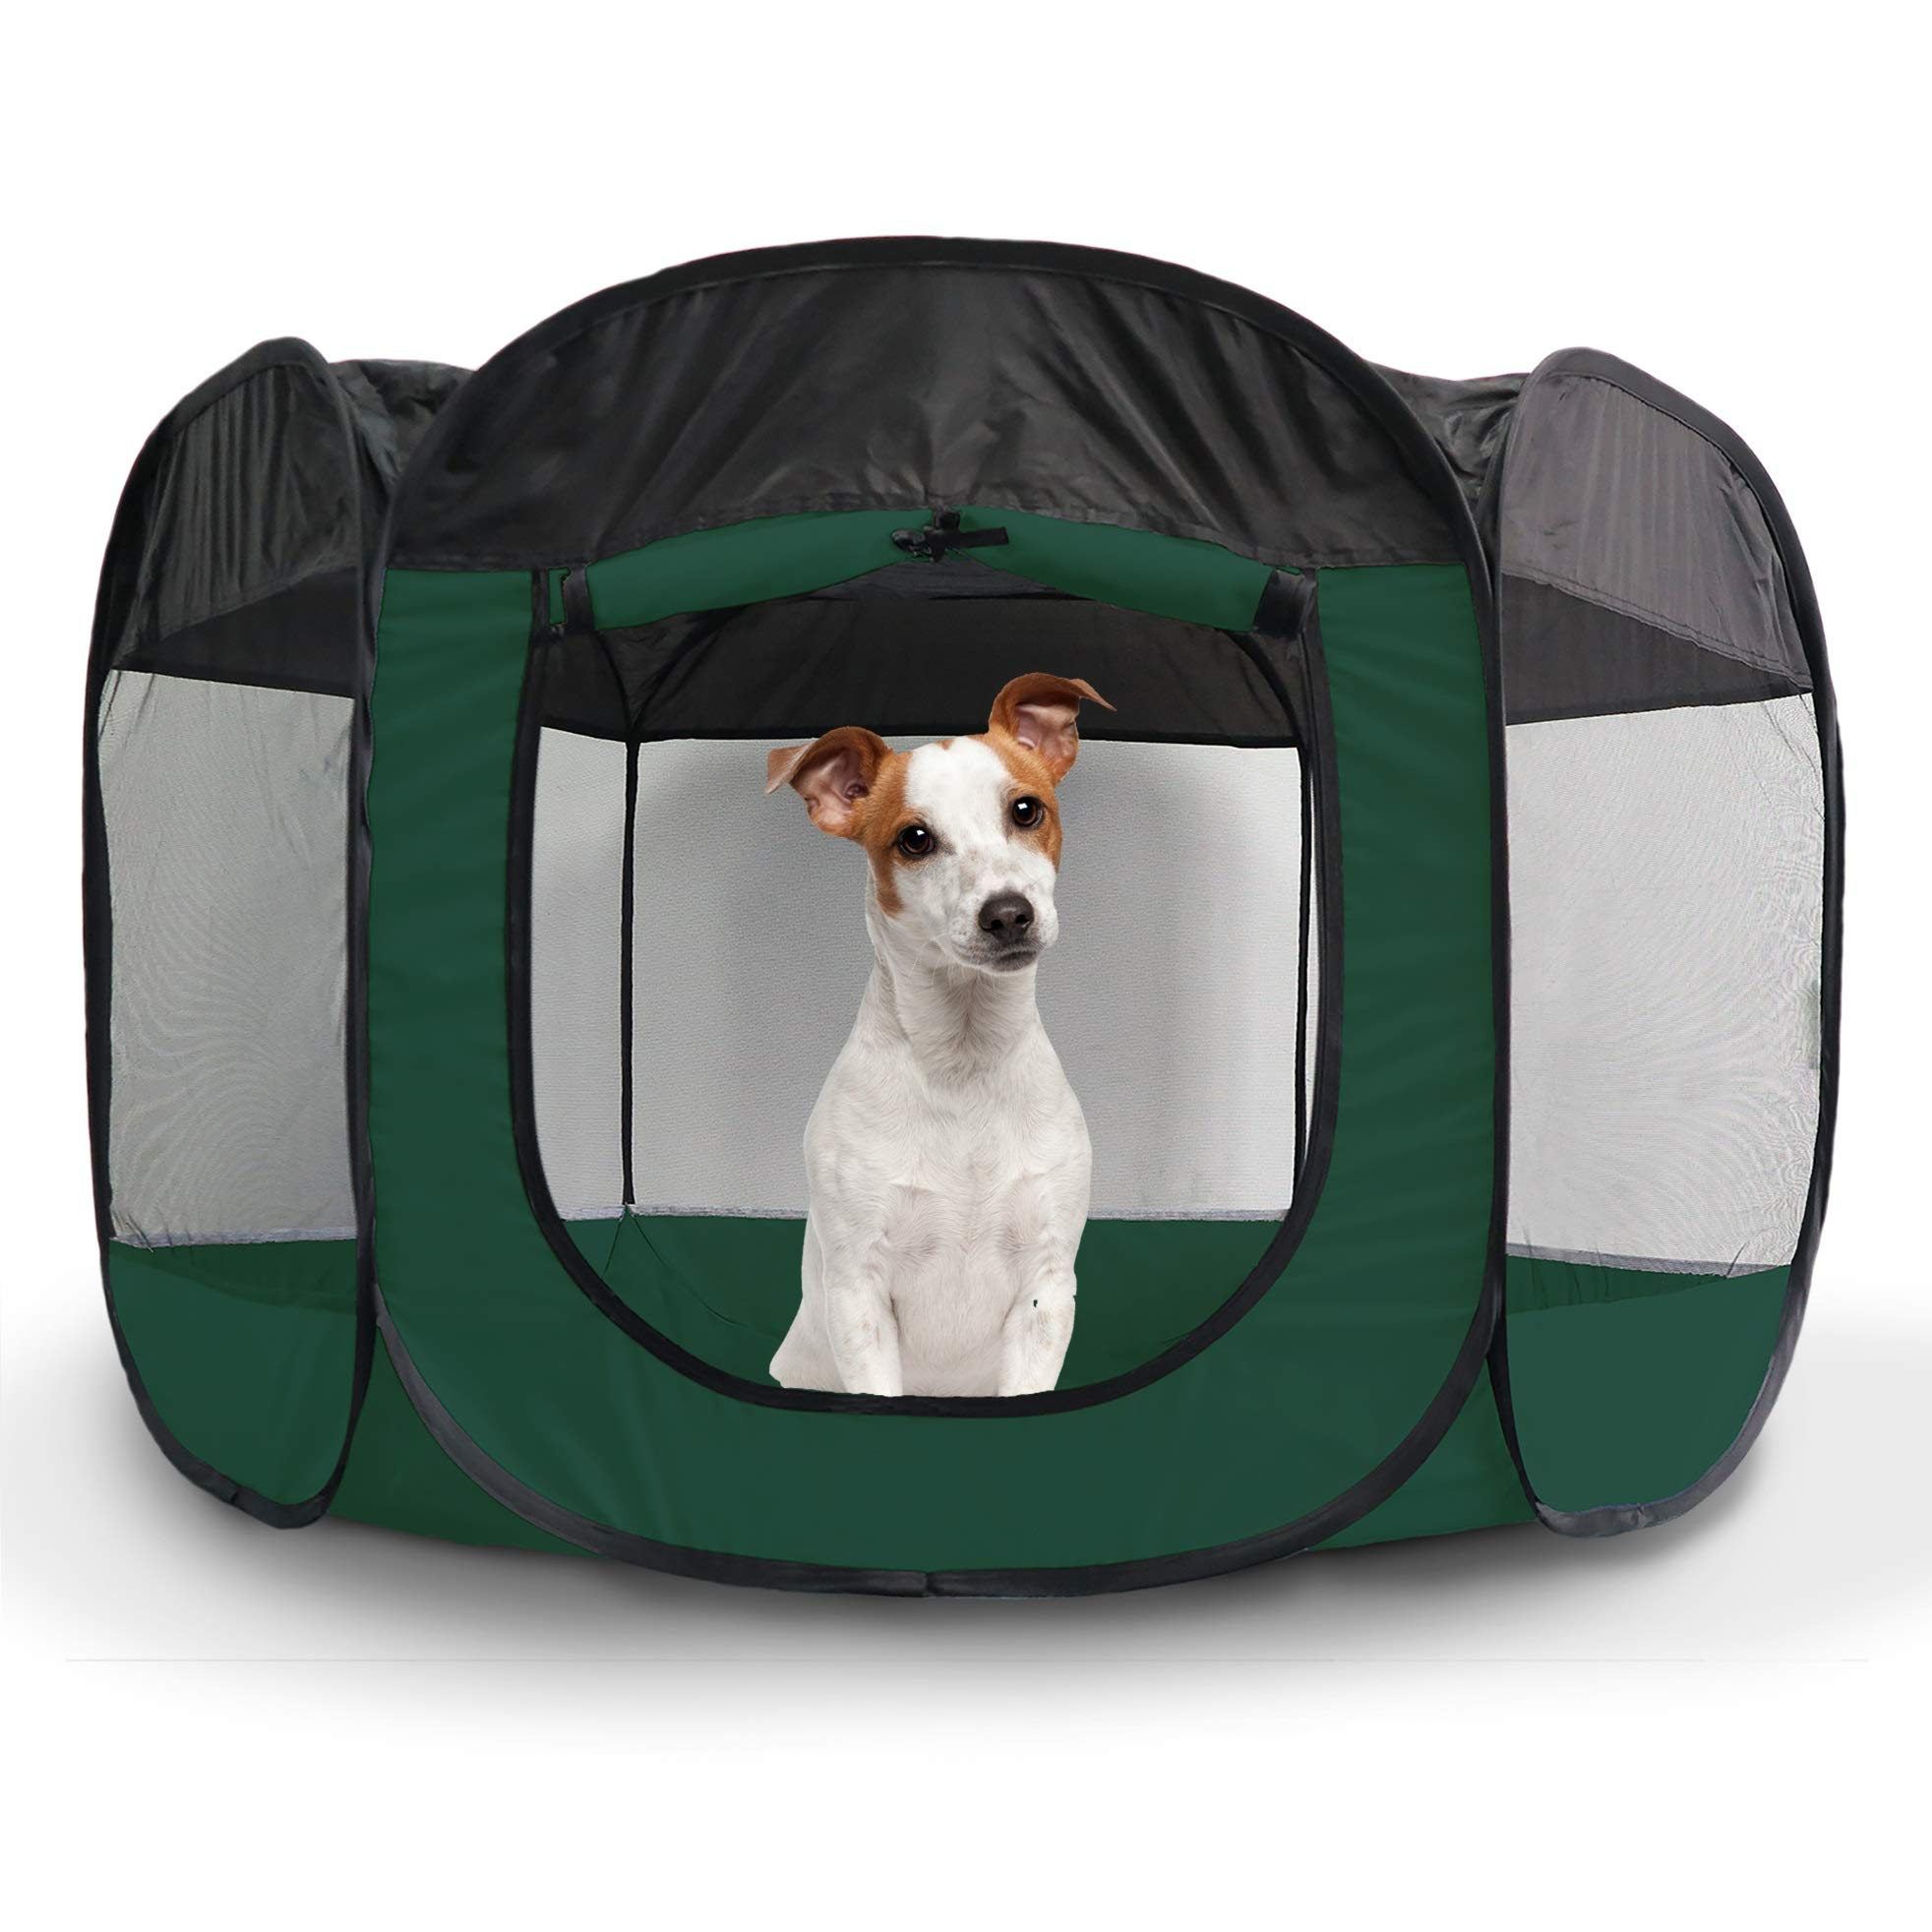 Furhaven Pet Playpen - Indoor/Outdoor Mesh Open-Air Playpen & Exercise Pen Tent House Playground for Dogs & Cats, Hunter Green, Large